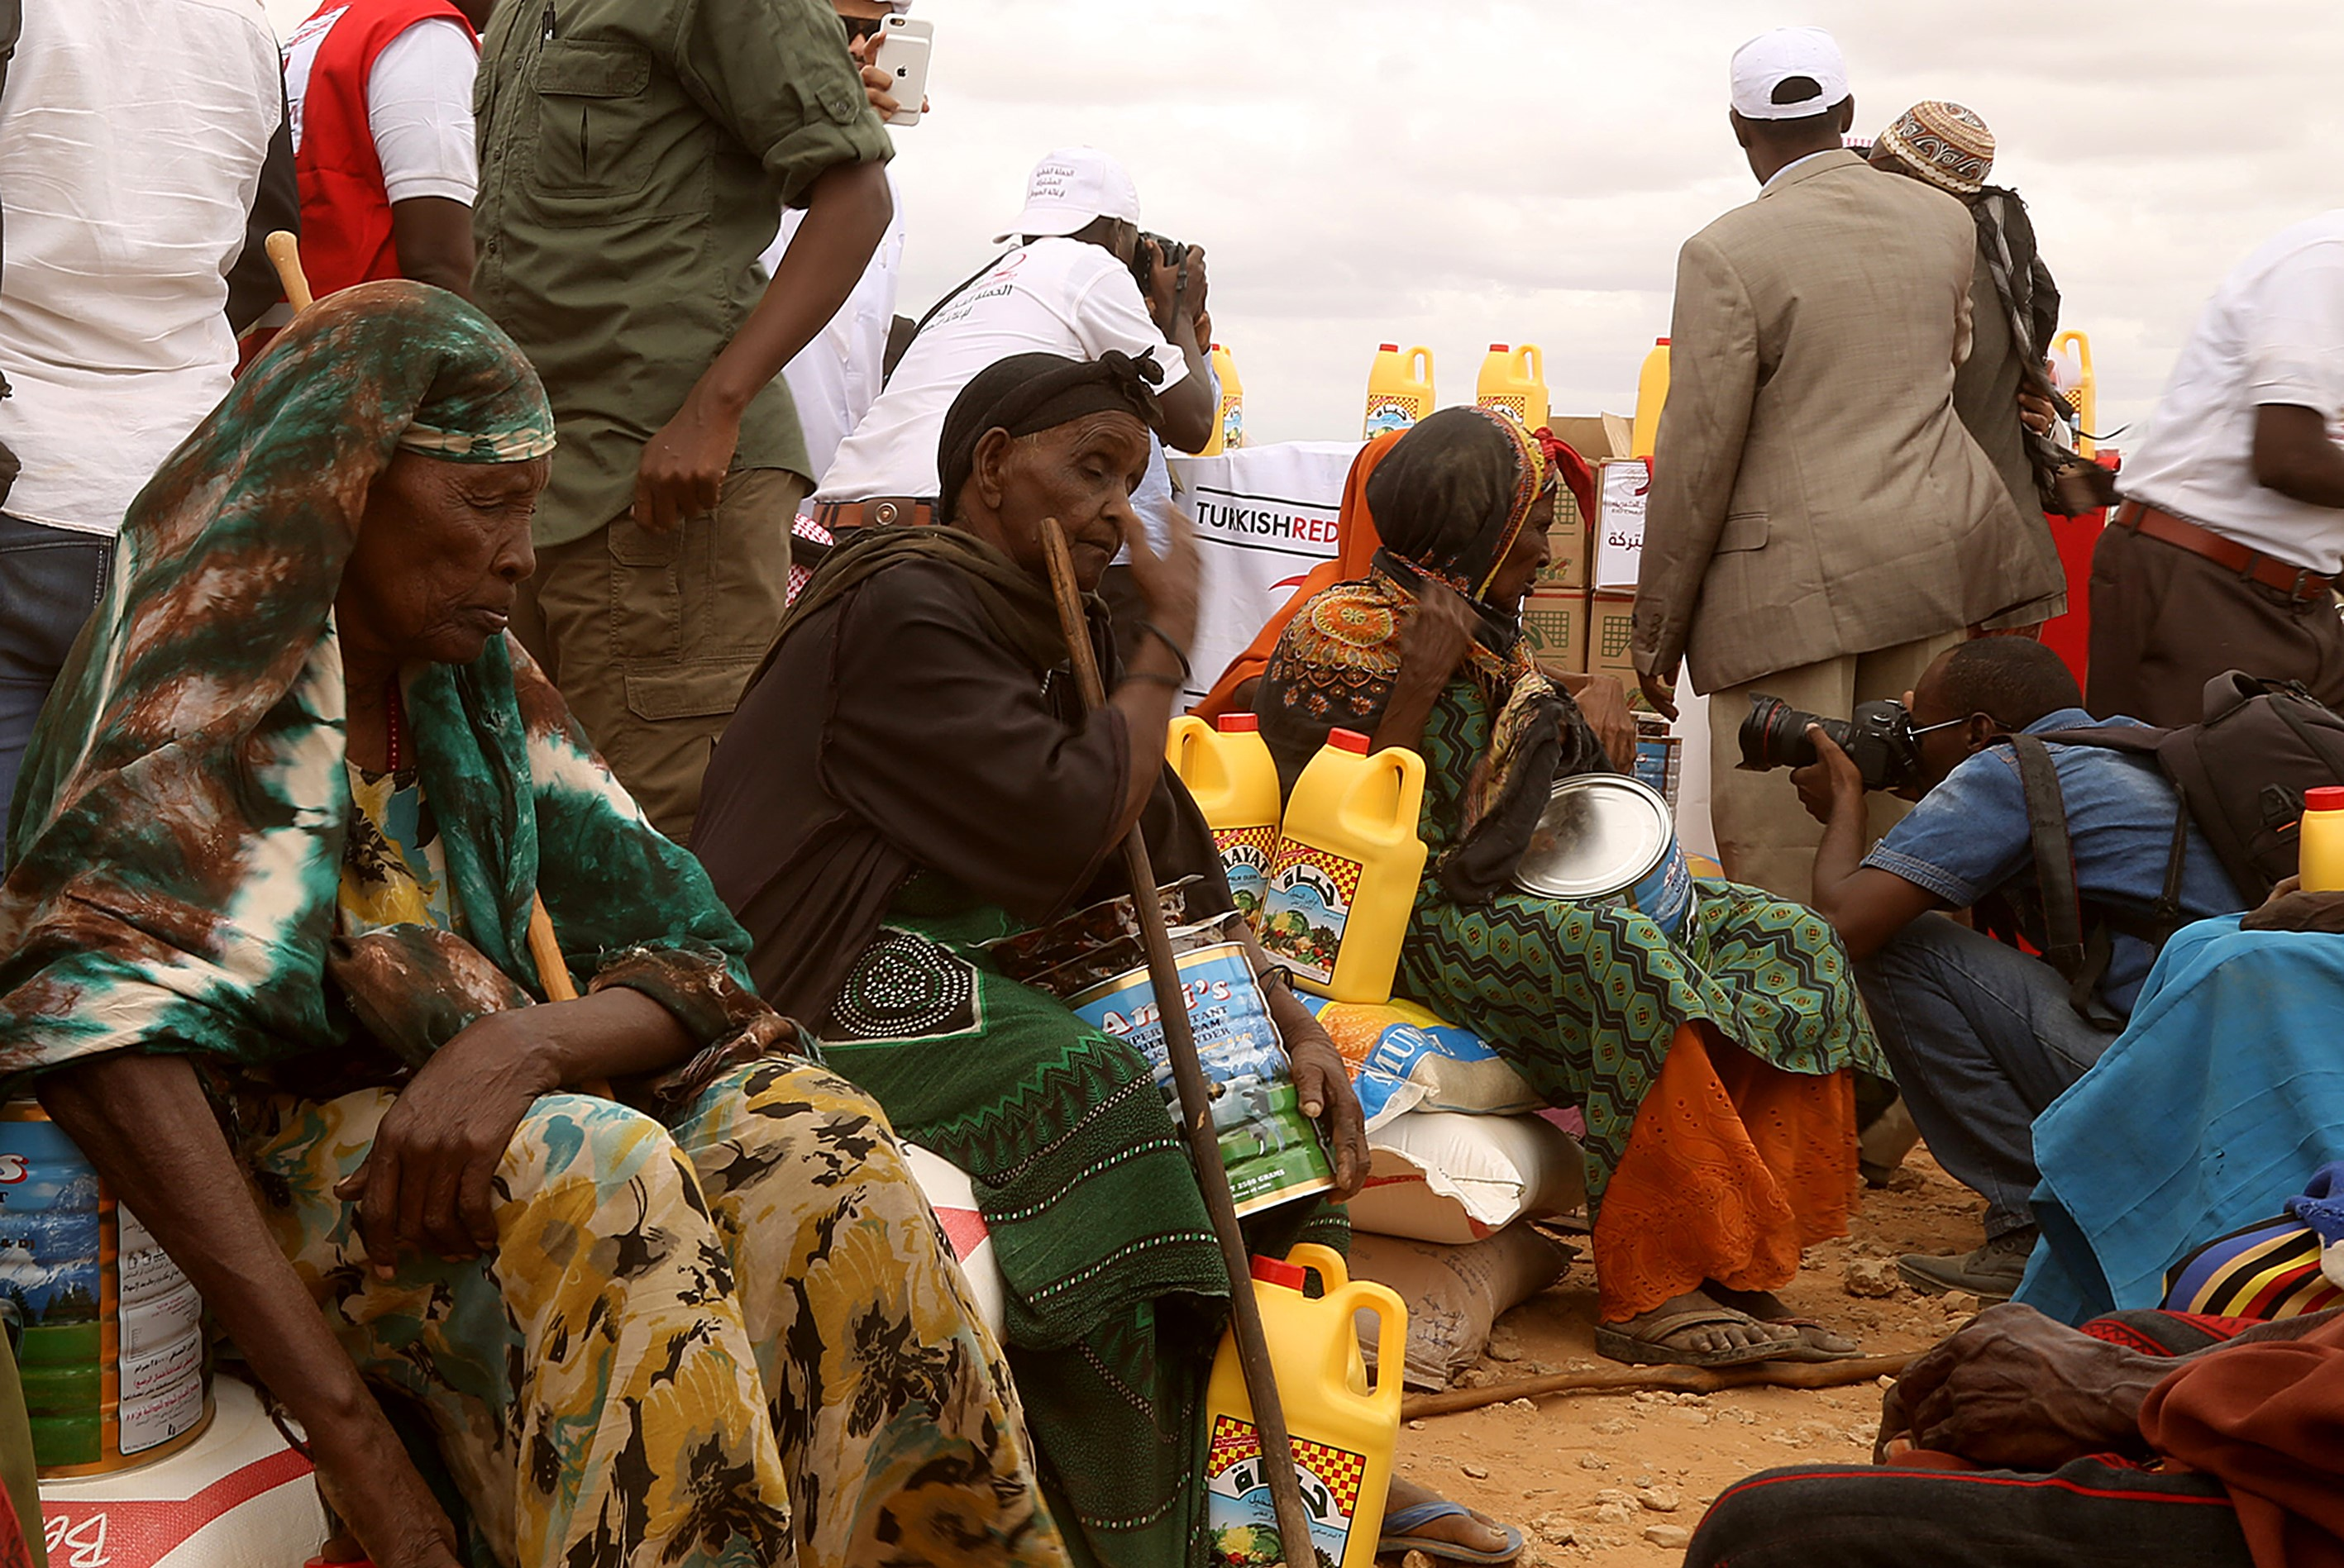 Somalian people wait on the queue as Turkish and Qatari officials dispatch humanitarian aid goods on the Islamic holy month Ramadan at Beledweyne in Hiran, Somalia on June 22, 2016.